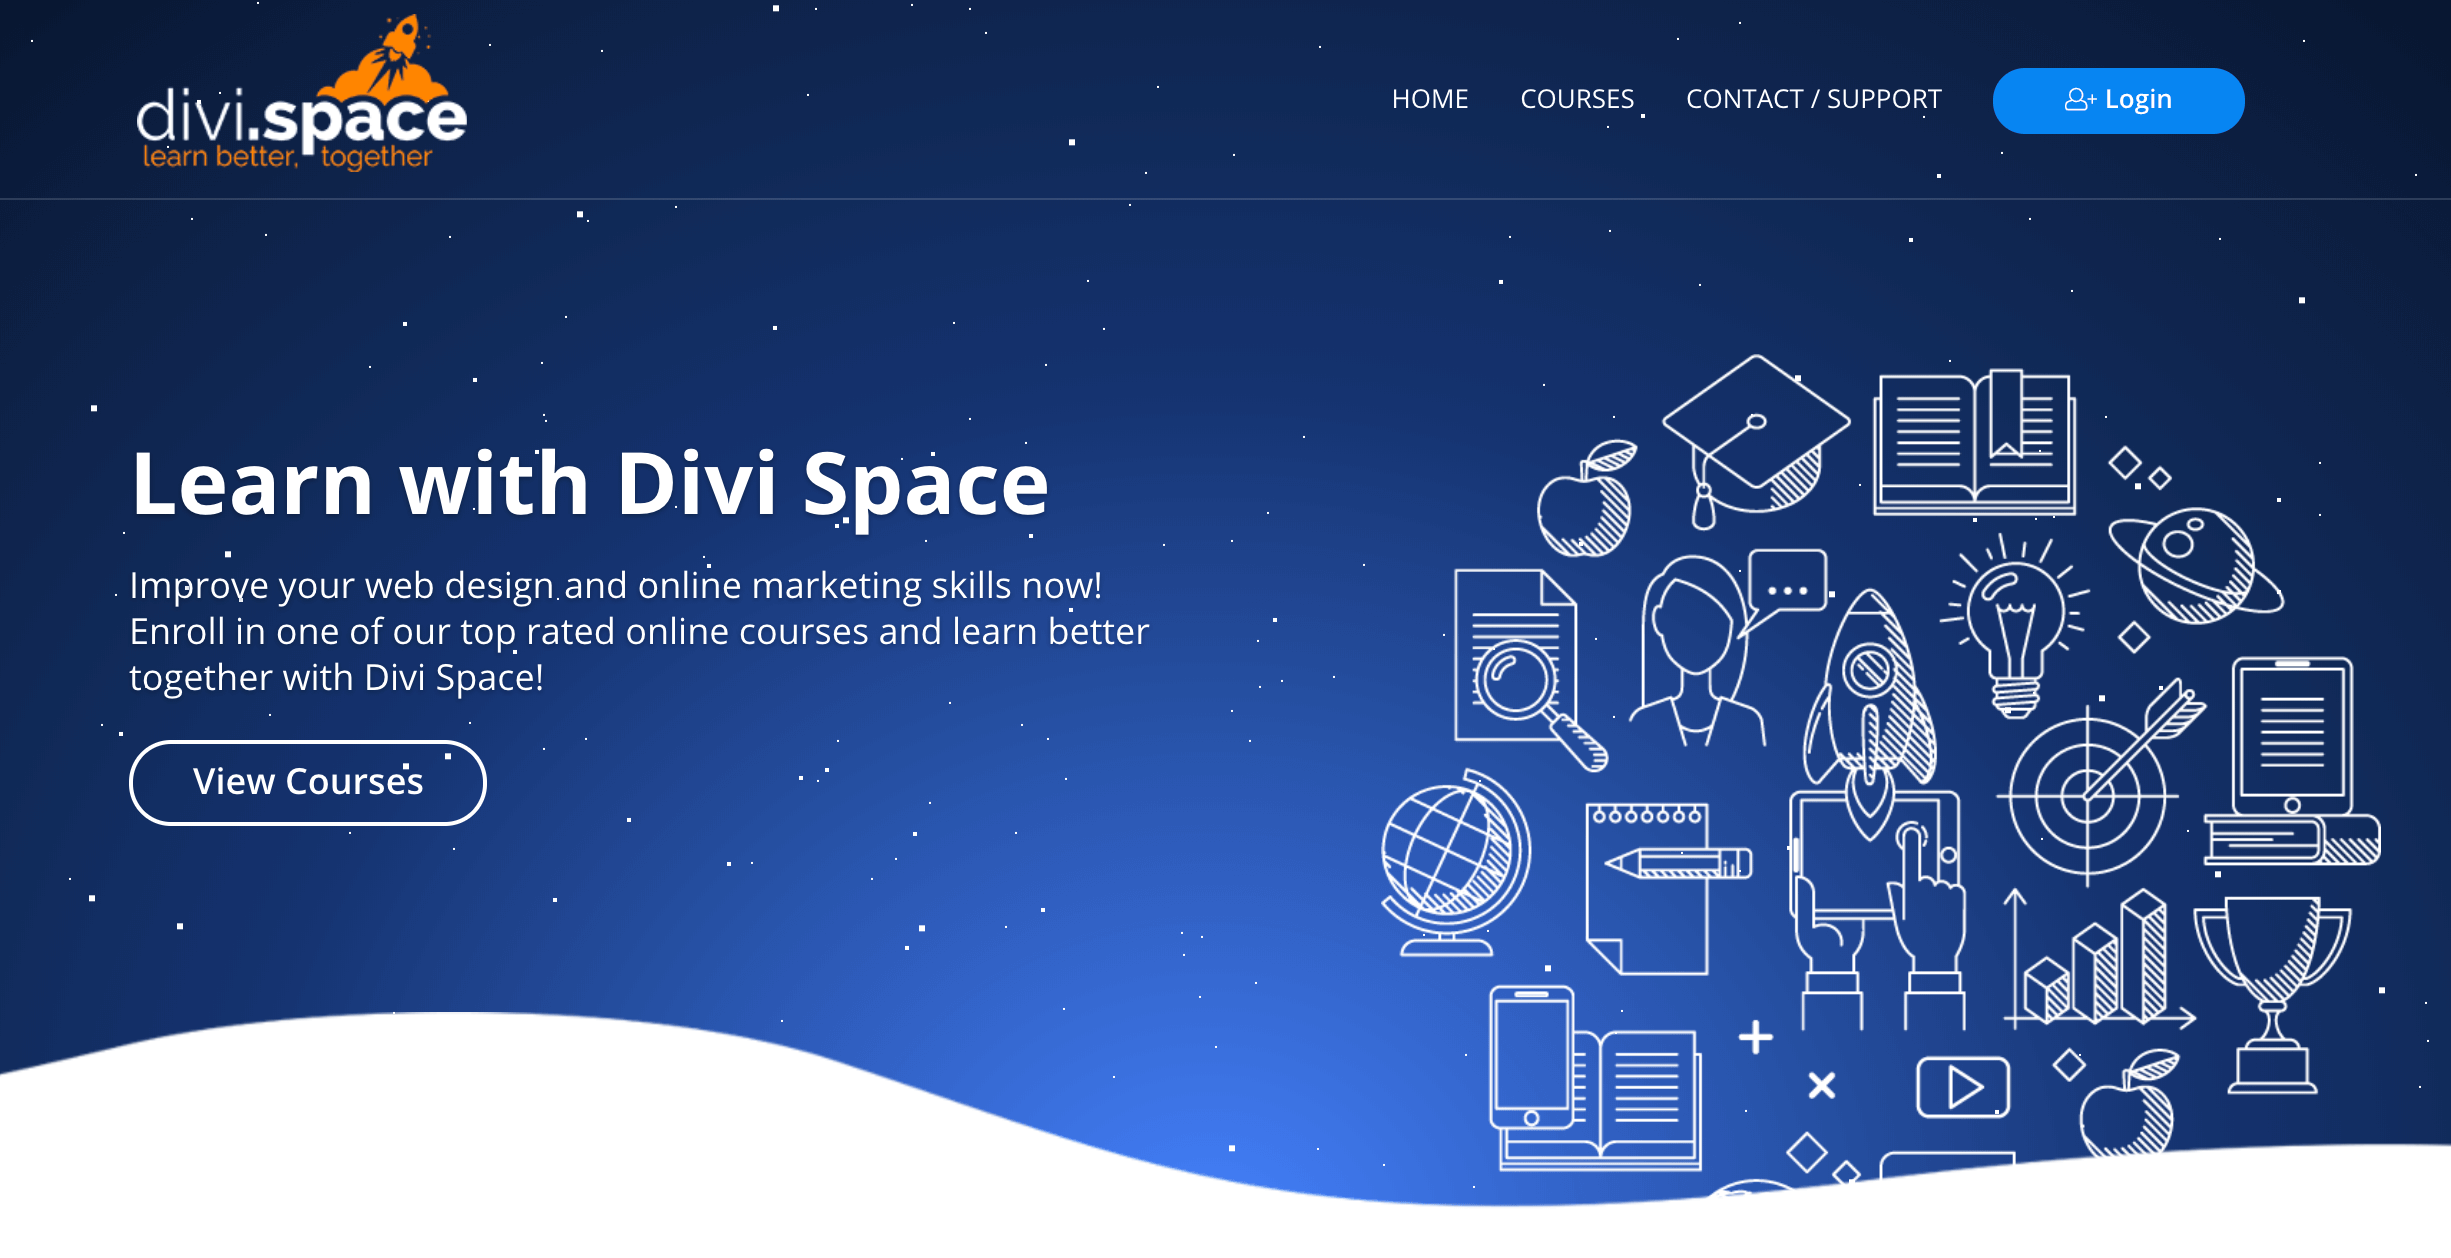 The Divi CSS and Child Theme Guide | Divi Space